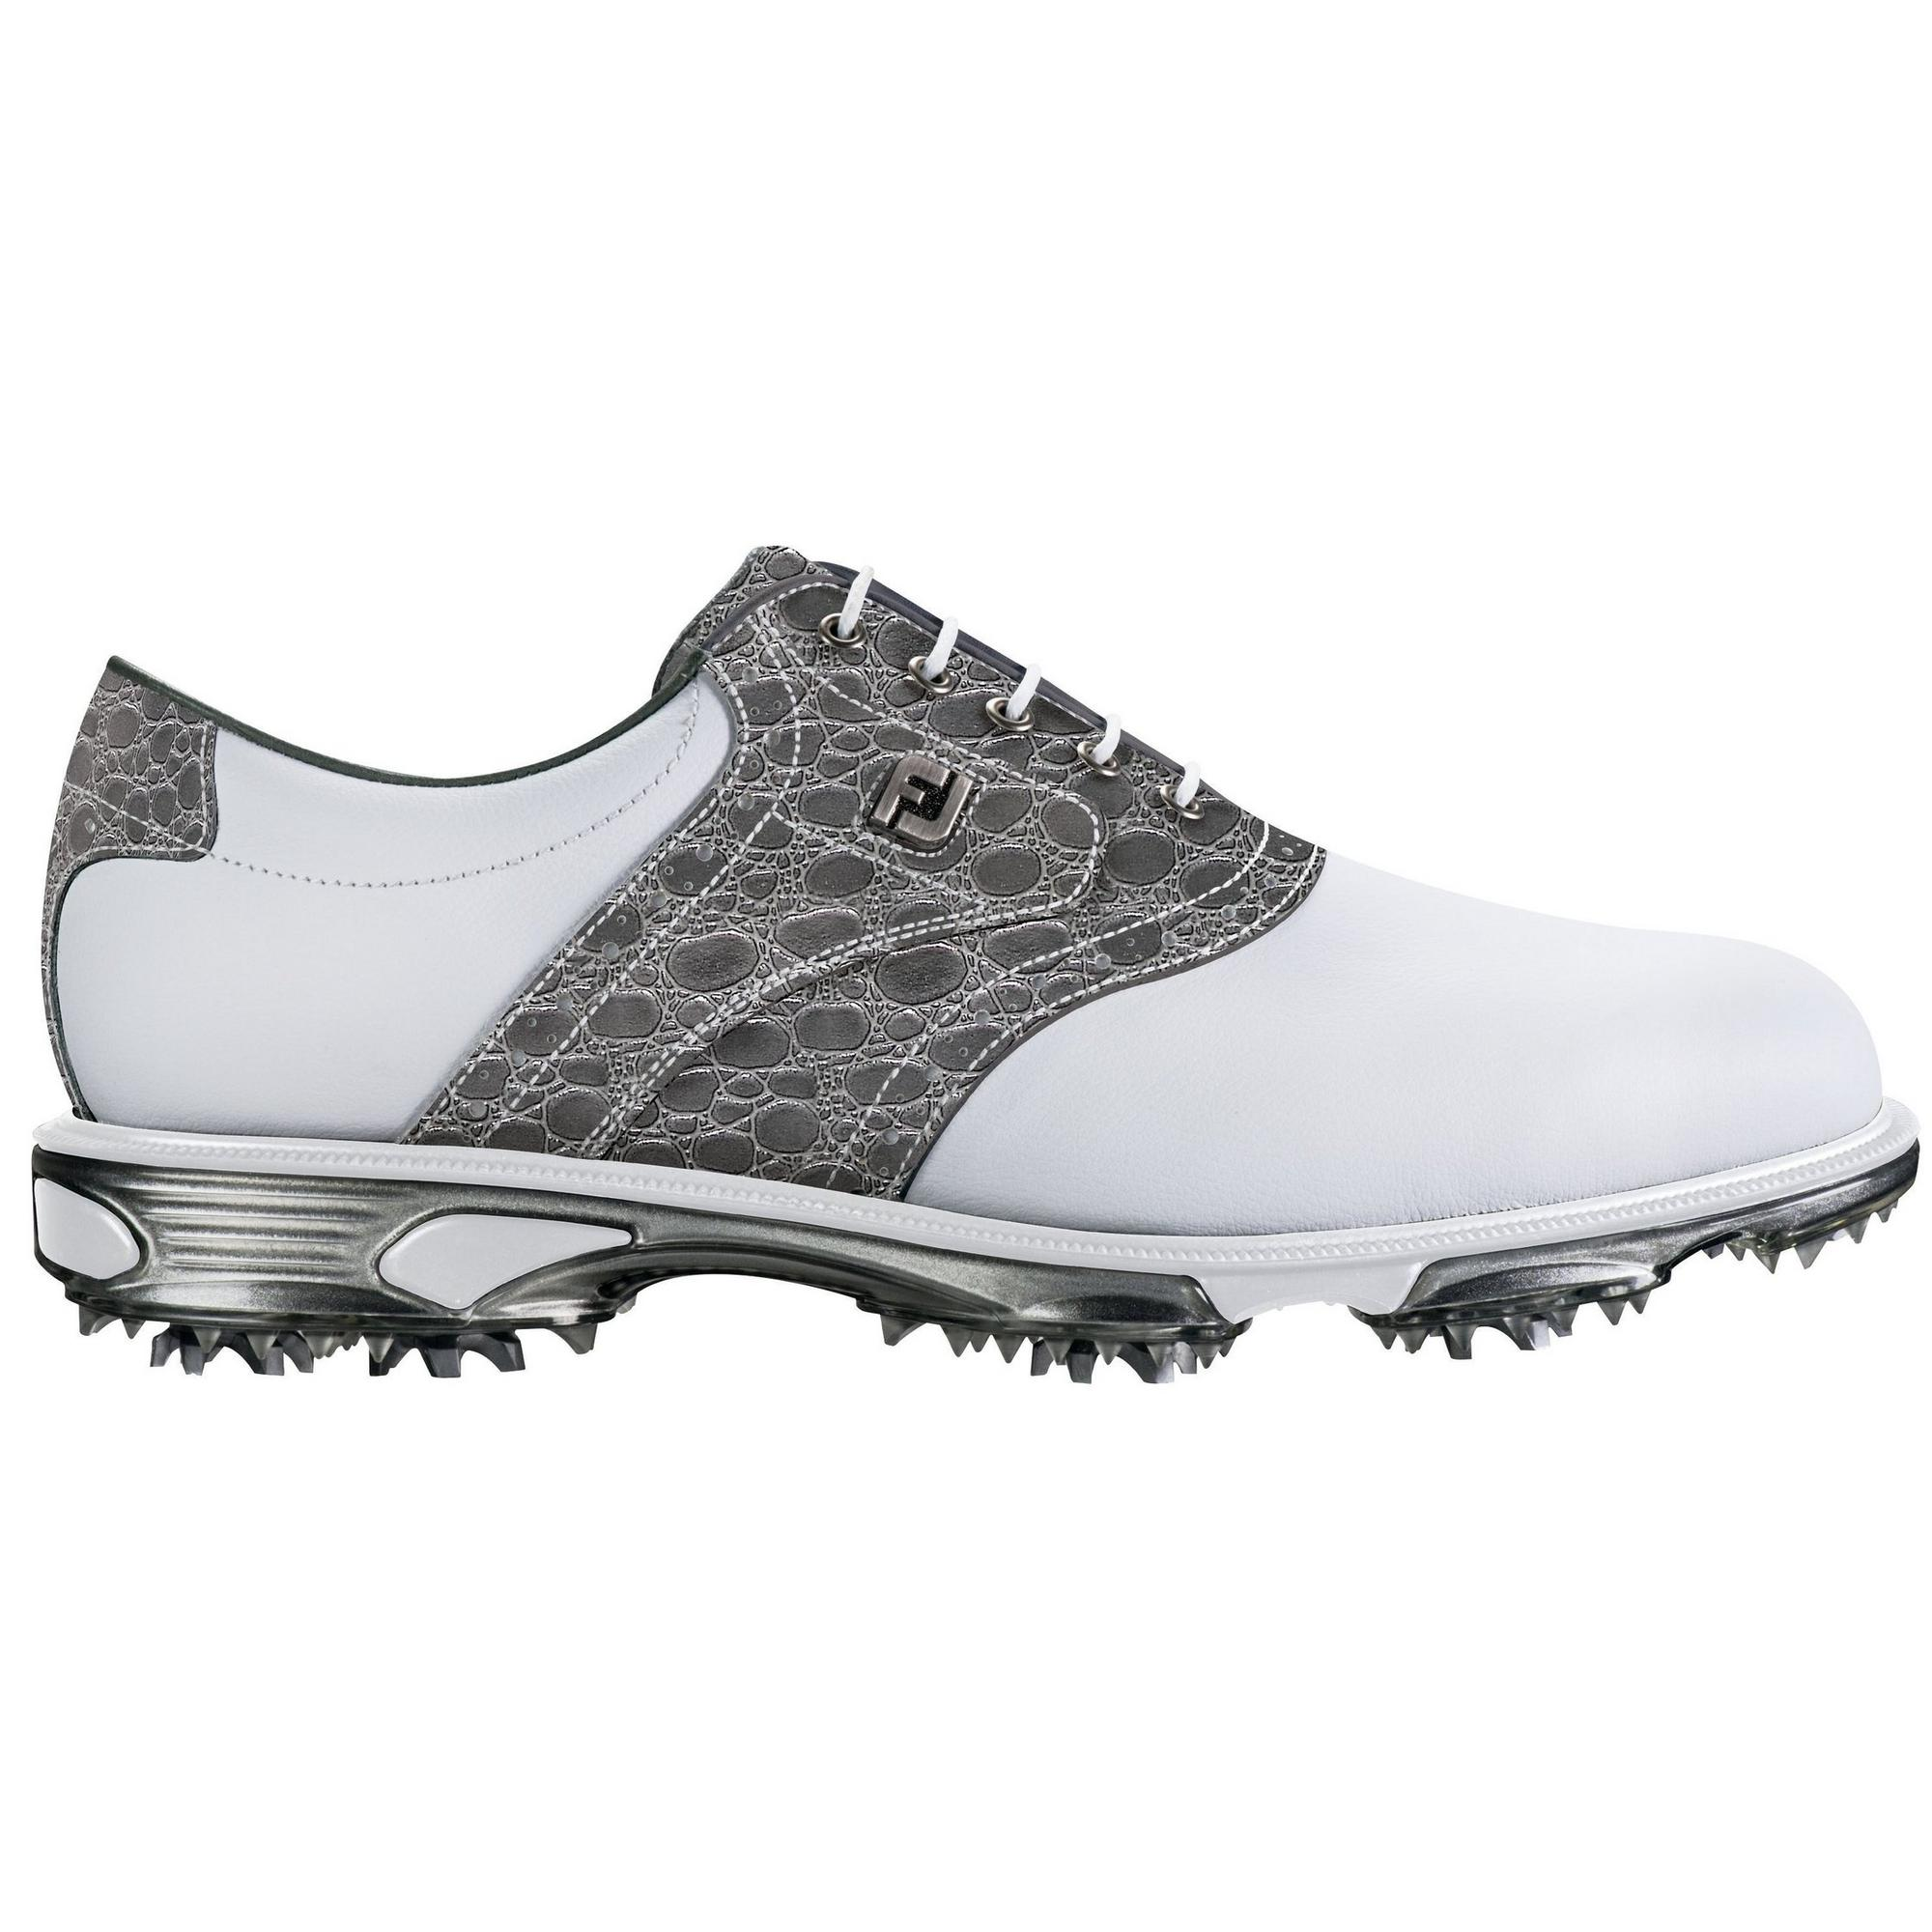 Men's DryJoy Tour 30th Anniversary Limited Edition Spiked Golf Shoe - White/Grey